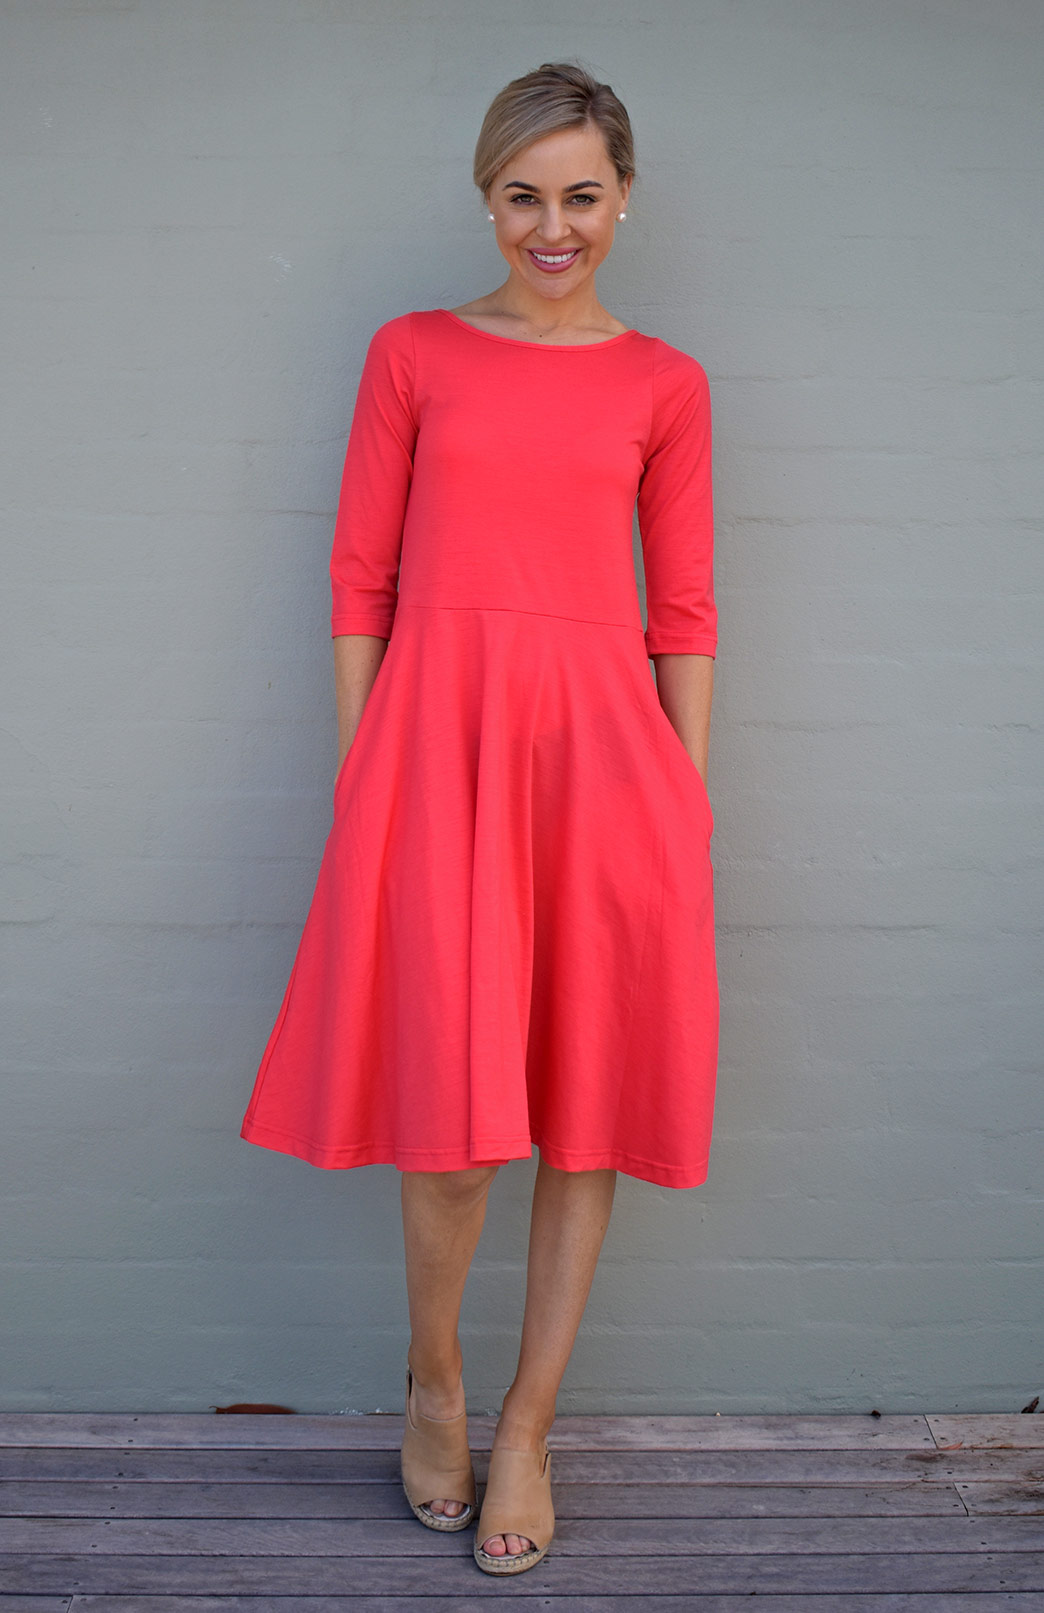 Mary Dress - Women's Coral Knee Length 3/4 Sleeved Fit and Flare Merino Wool Dress with Pockets - Smitten Merino Tasmania Australia